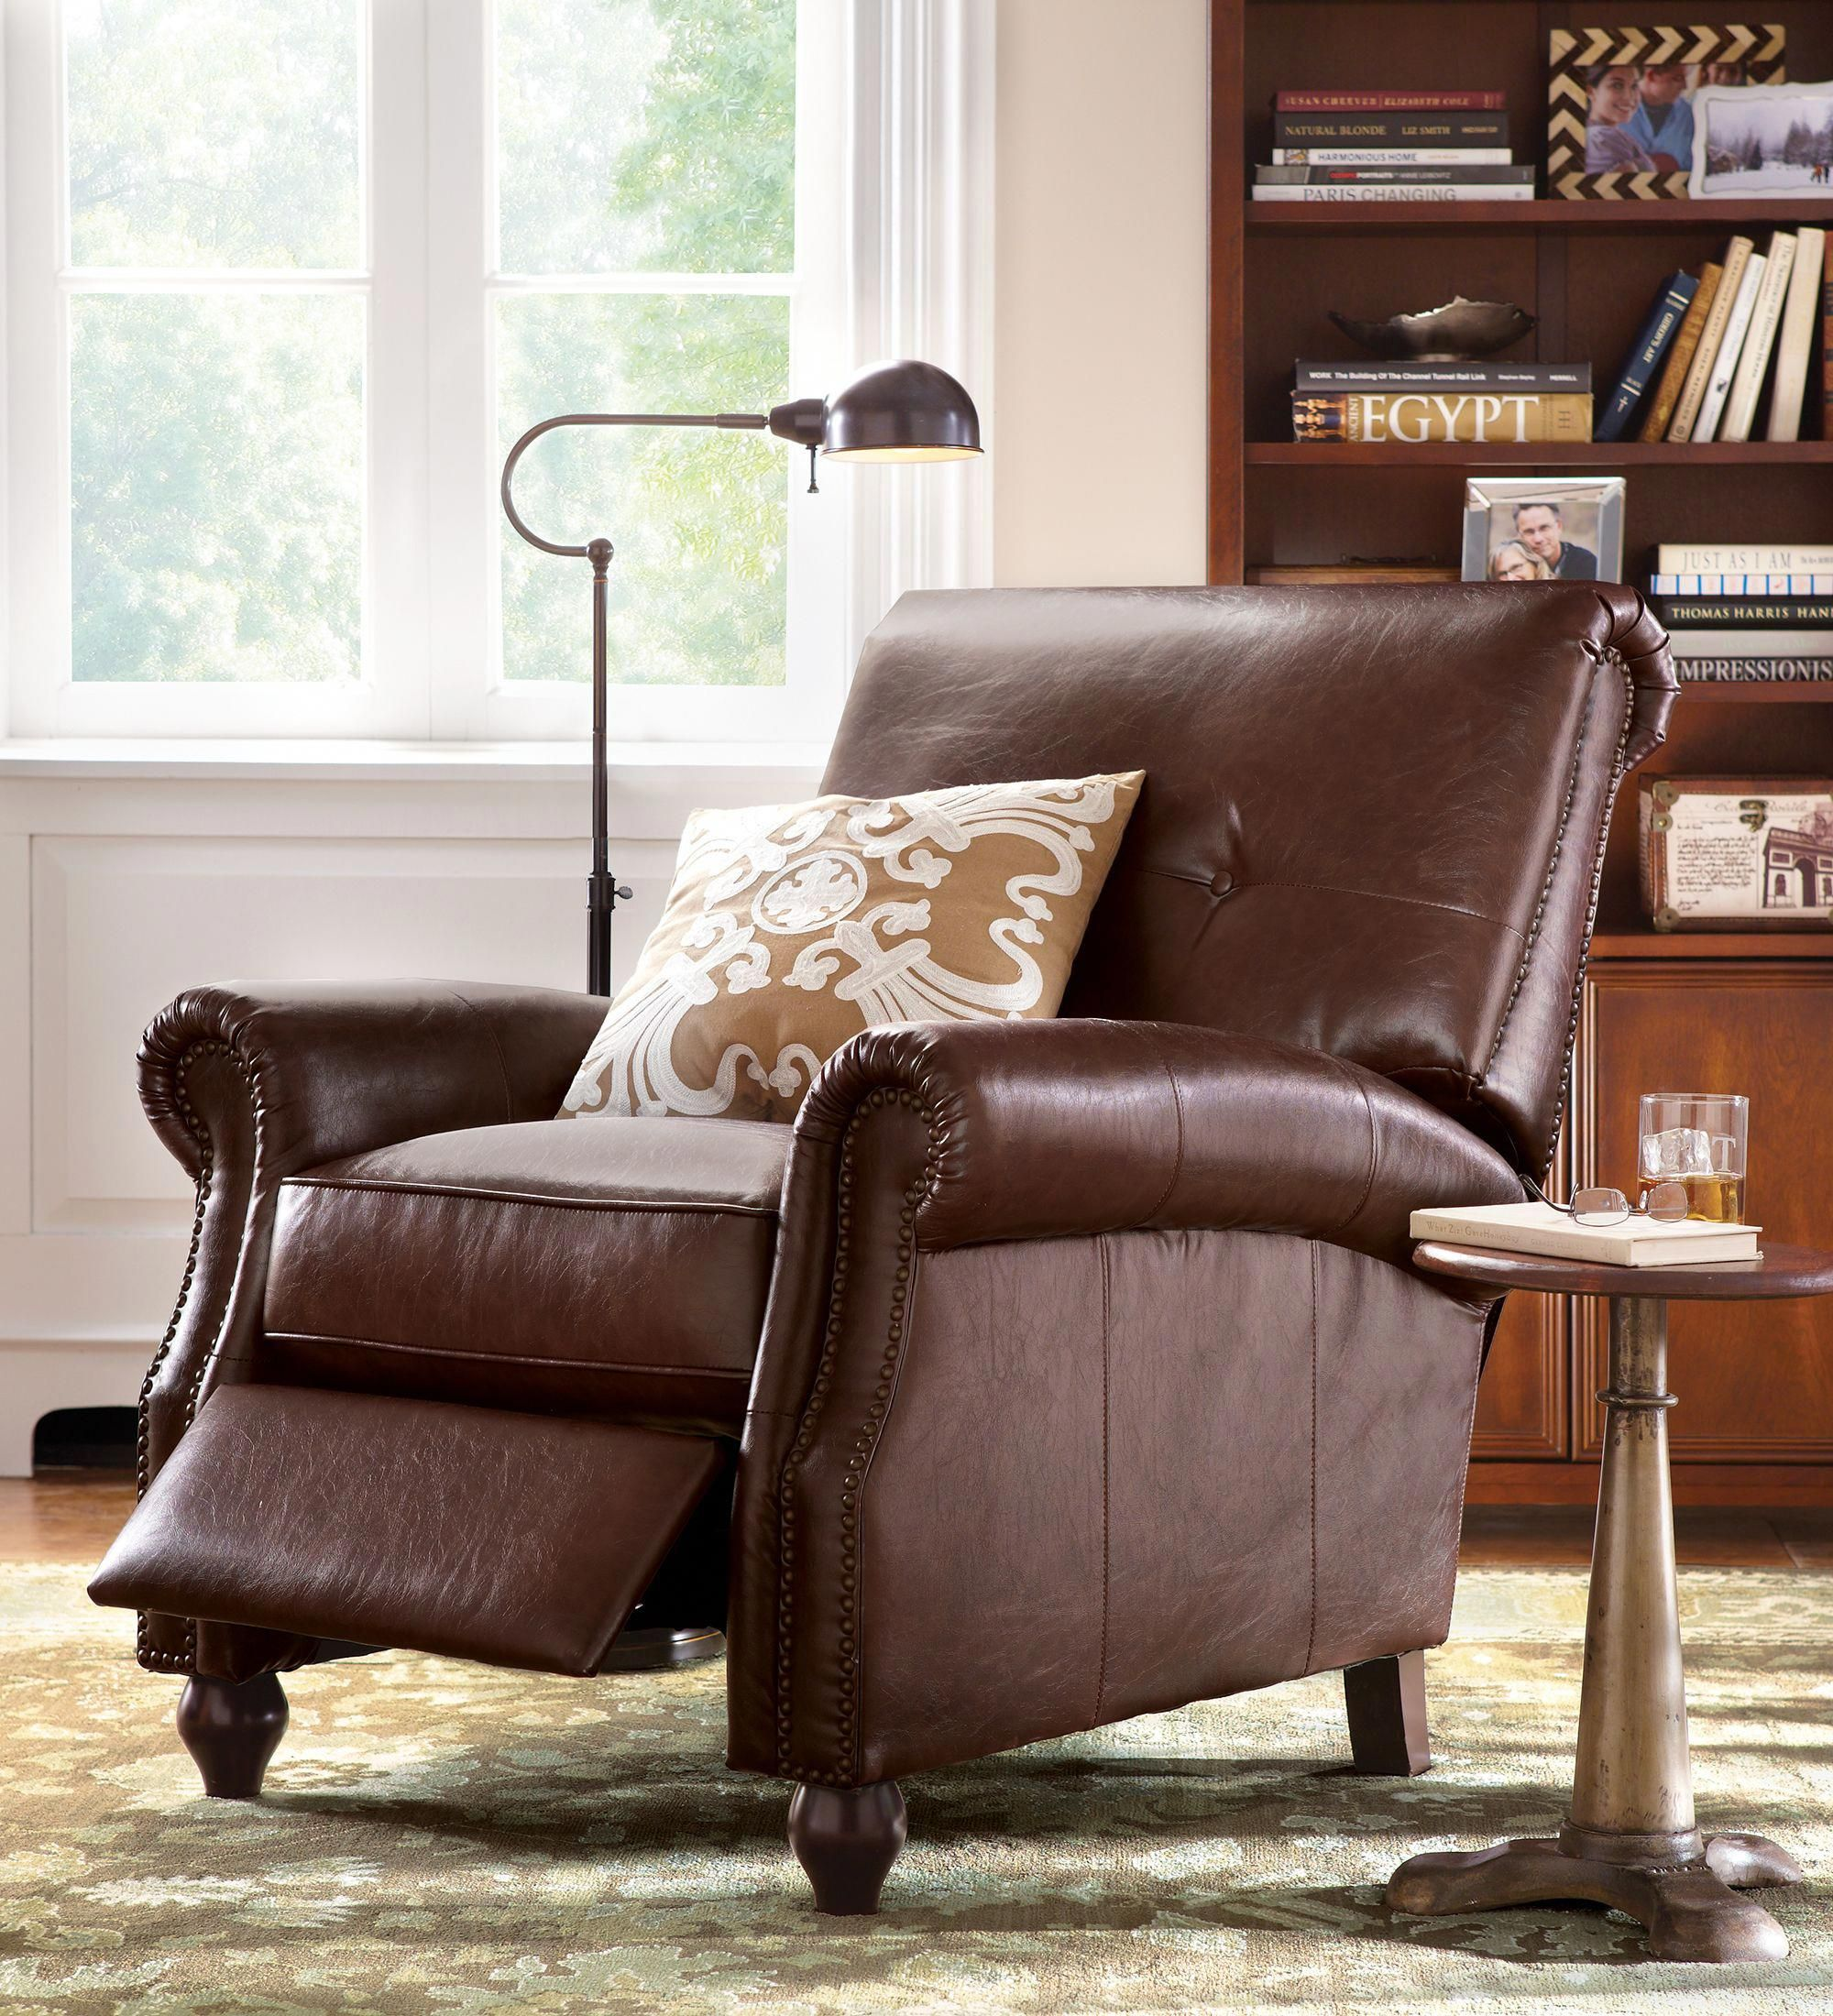 13 Fantastic Recliner Chairs With Heat And Massage ...